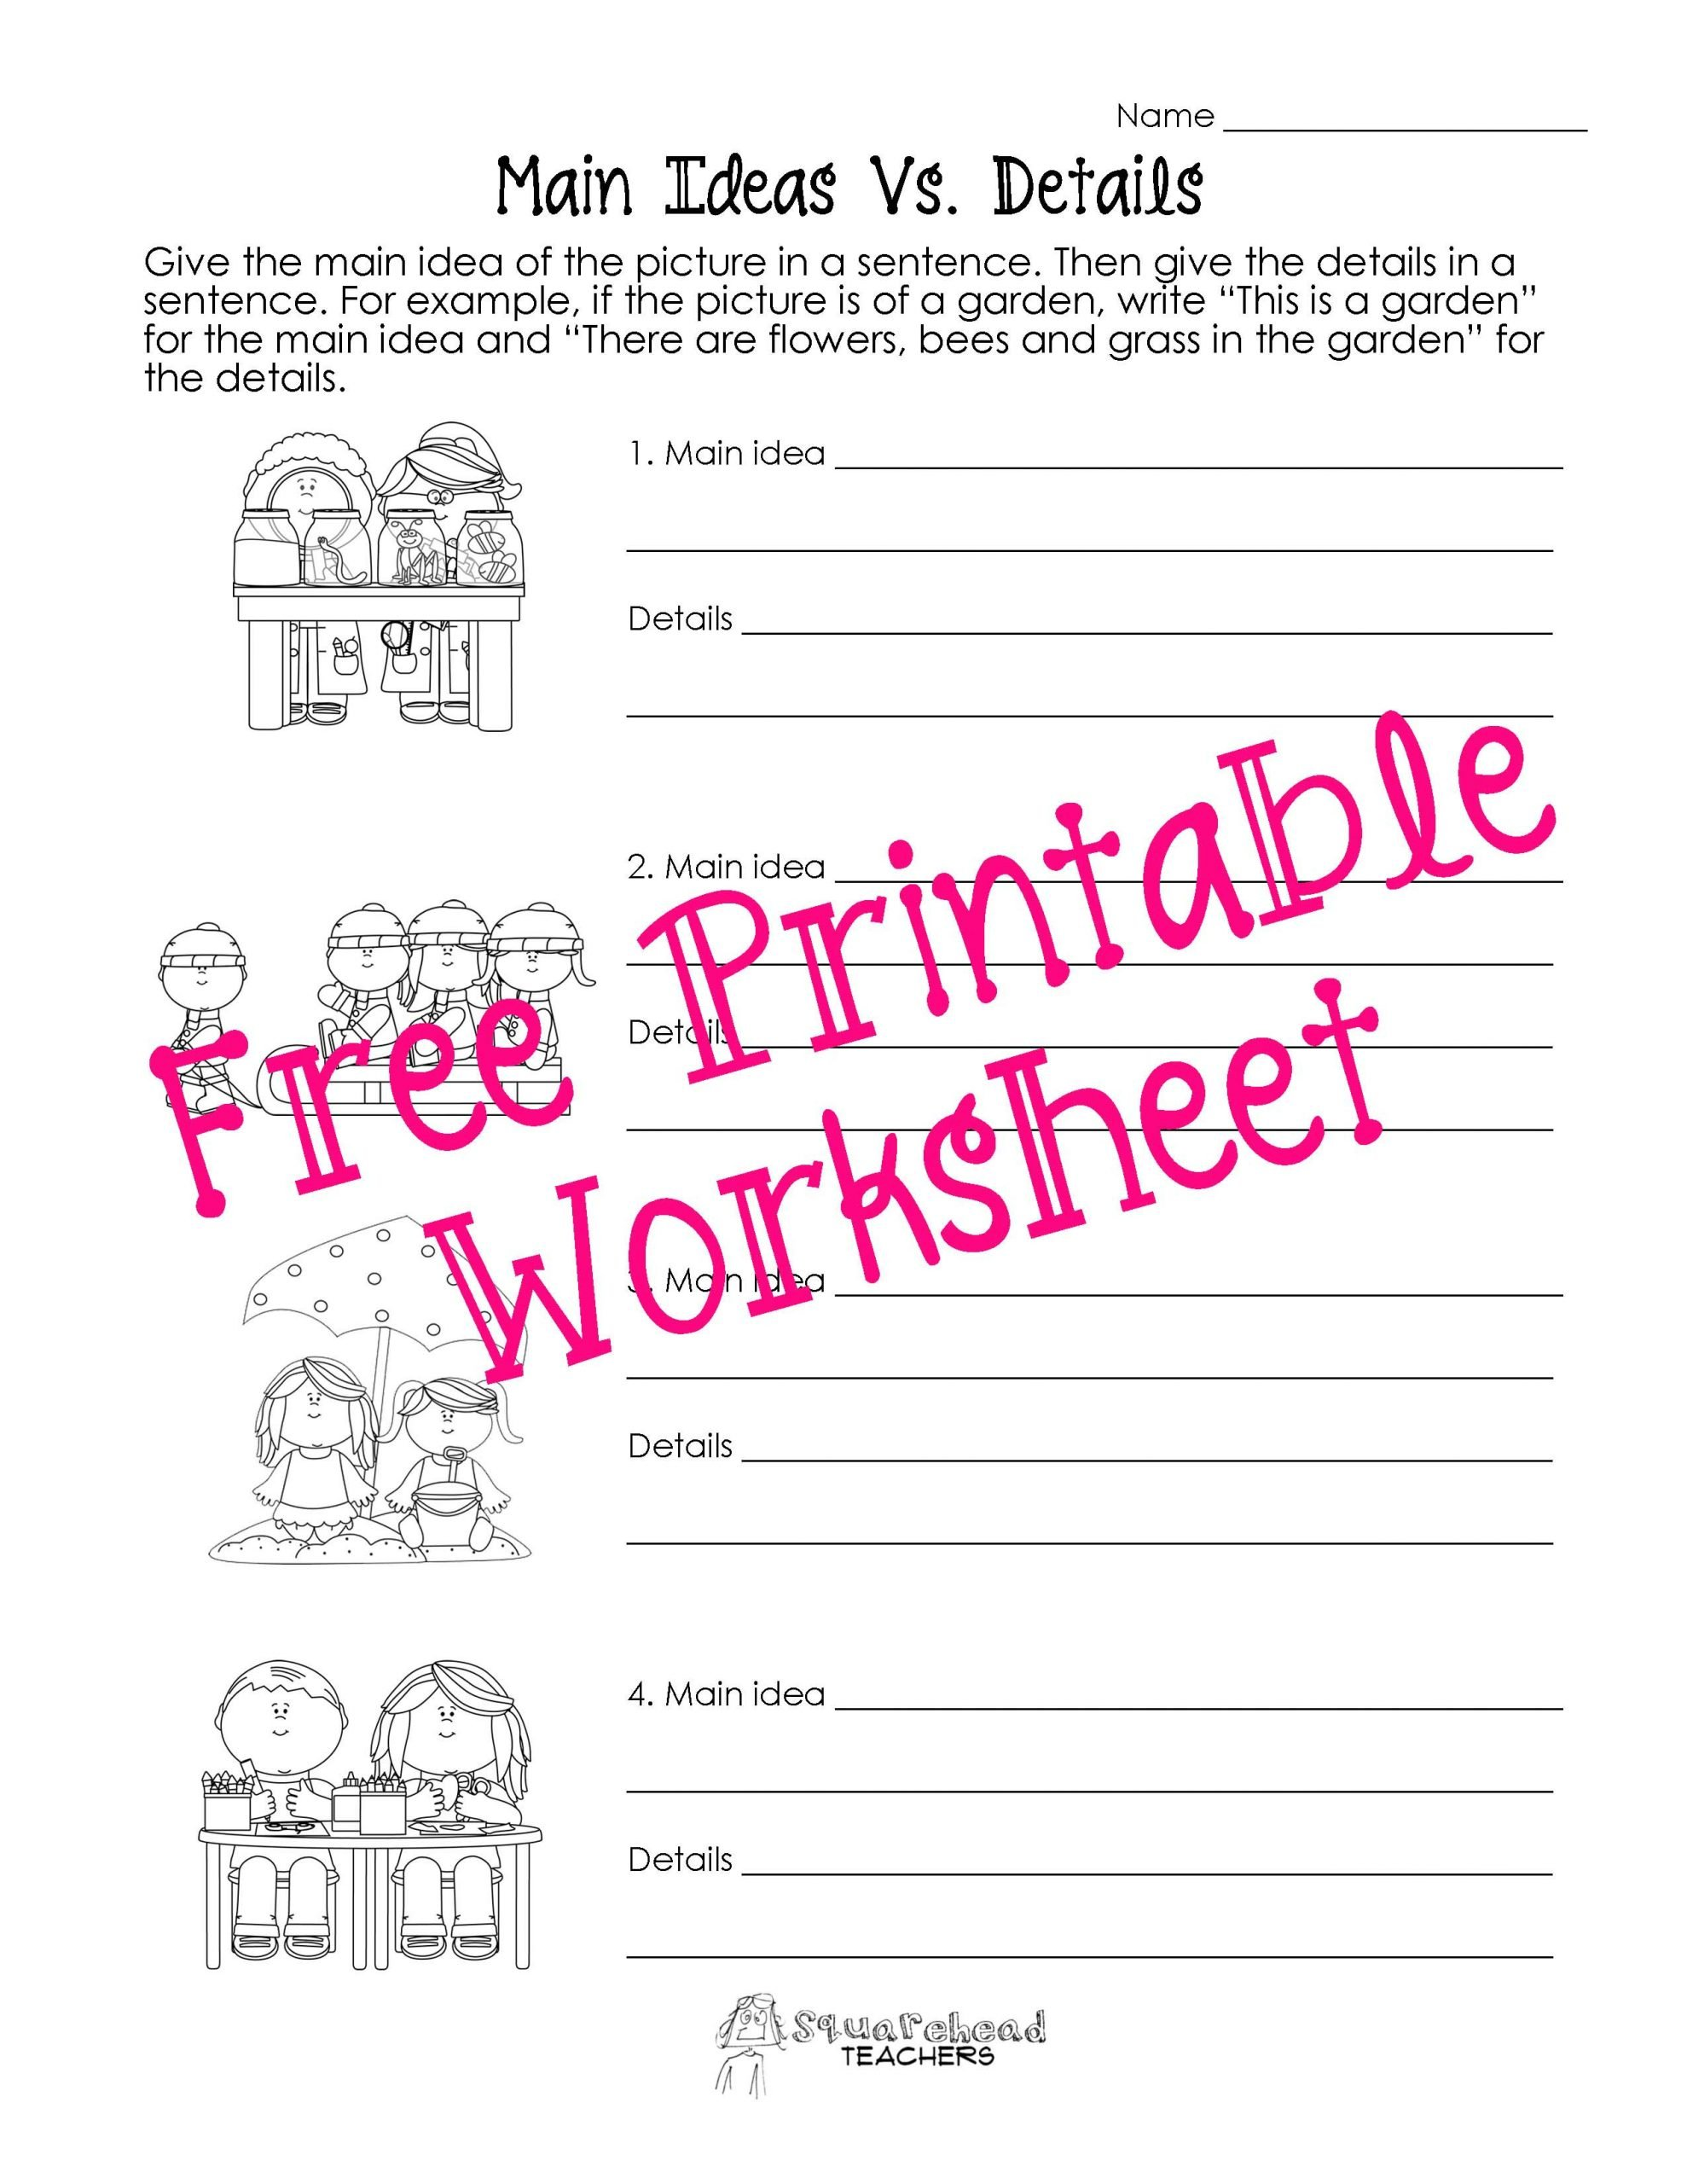 Main Idea Worksheets Grade 1 Main Idea Vs Details Worksheets